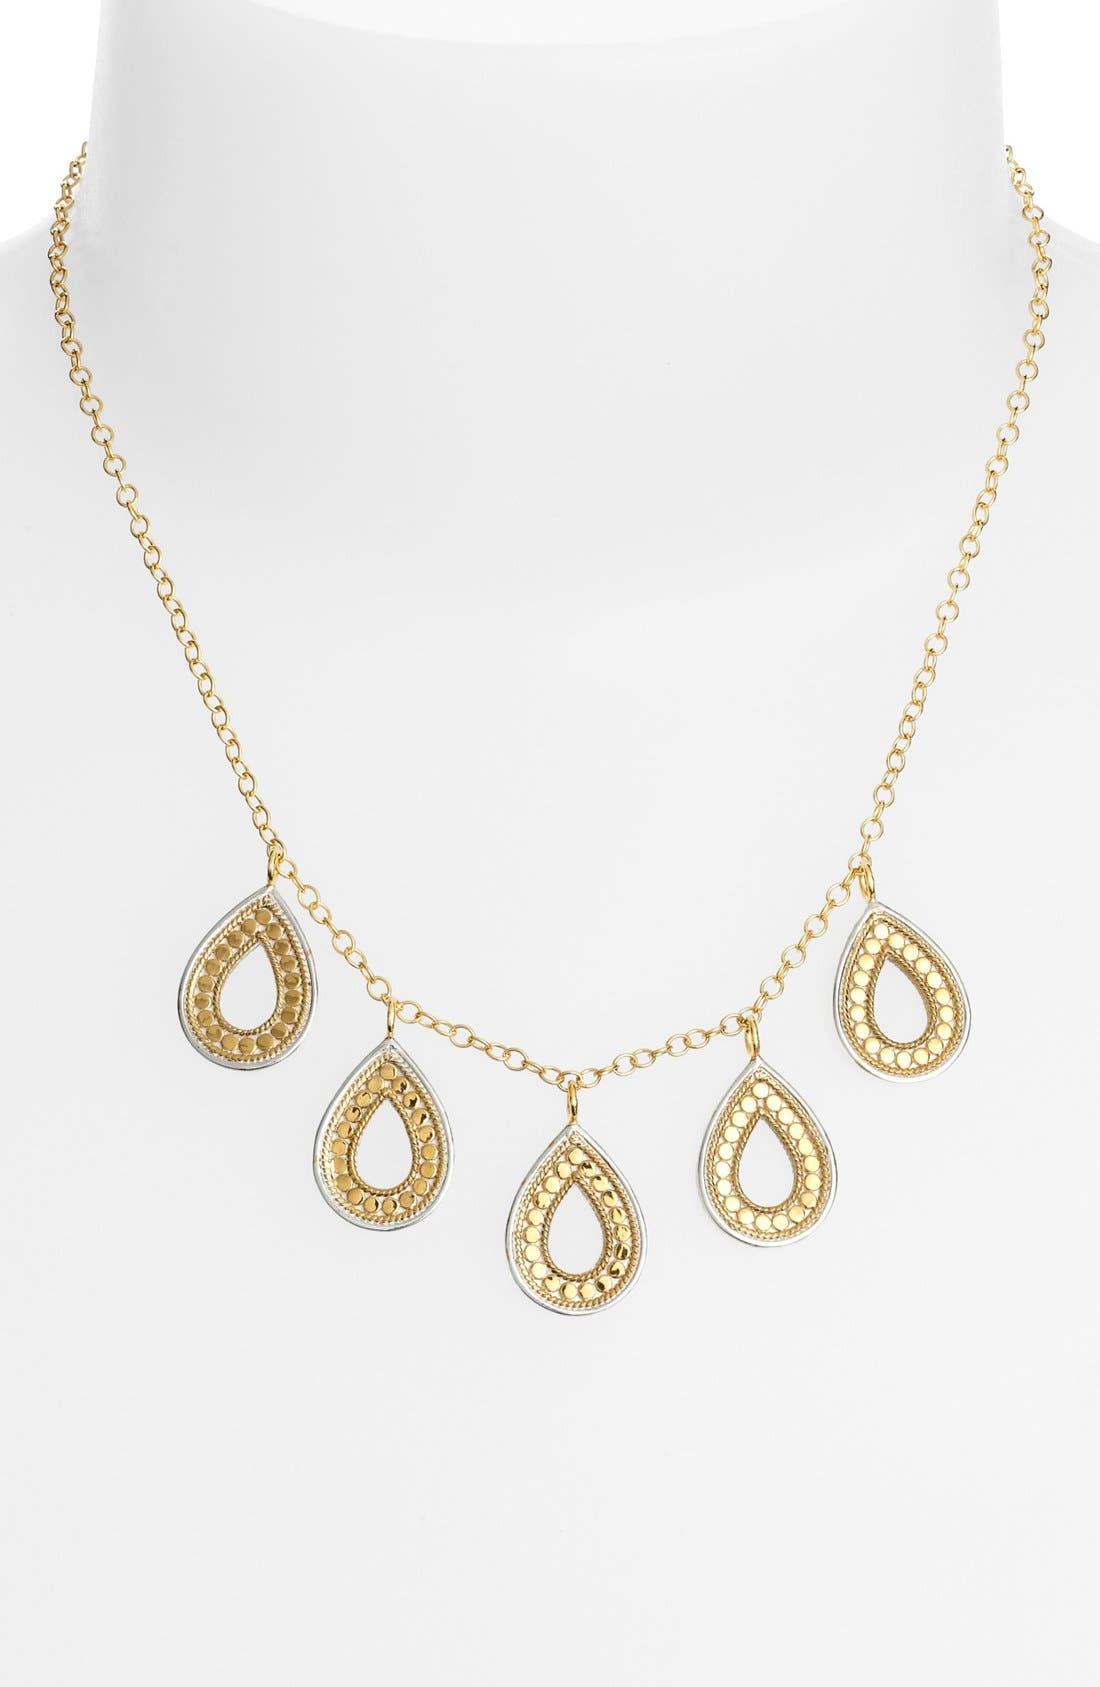 Alternate Image 1 Selected - Anna Beck 'Gili' Open 5-Drop Frontal Necklace